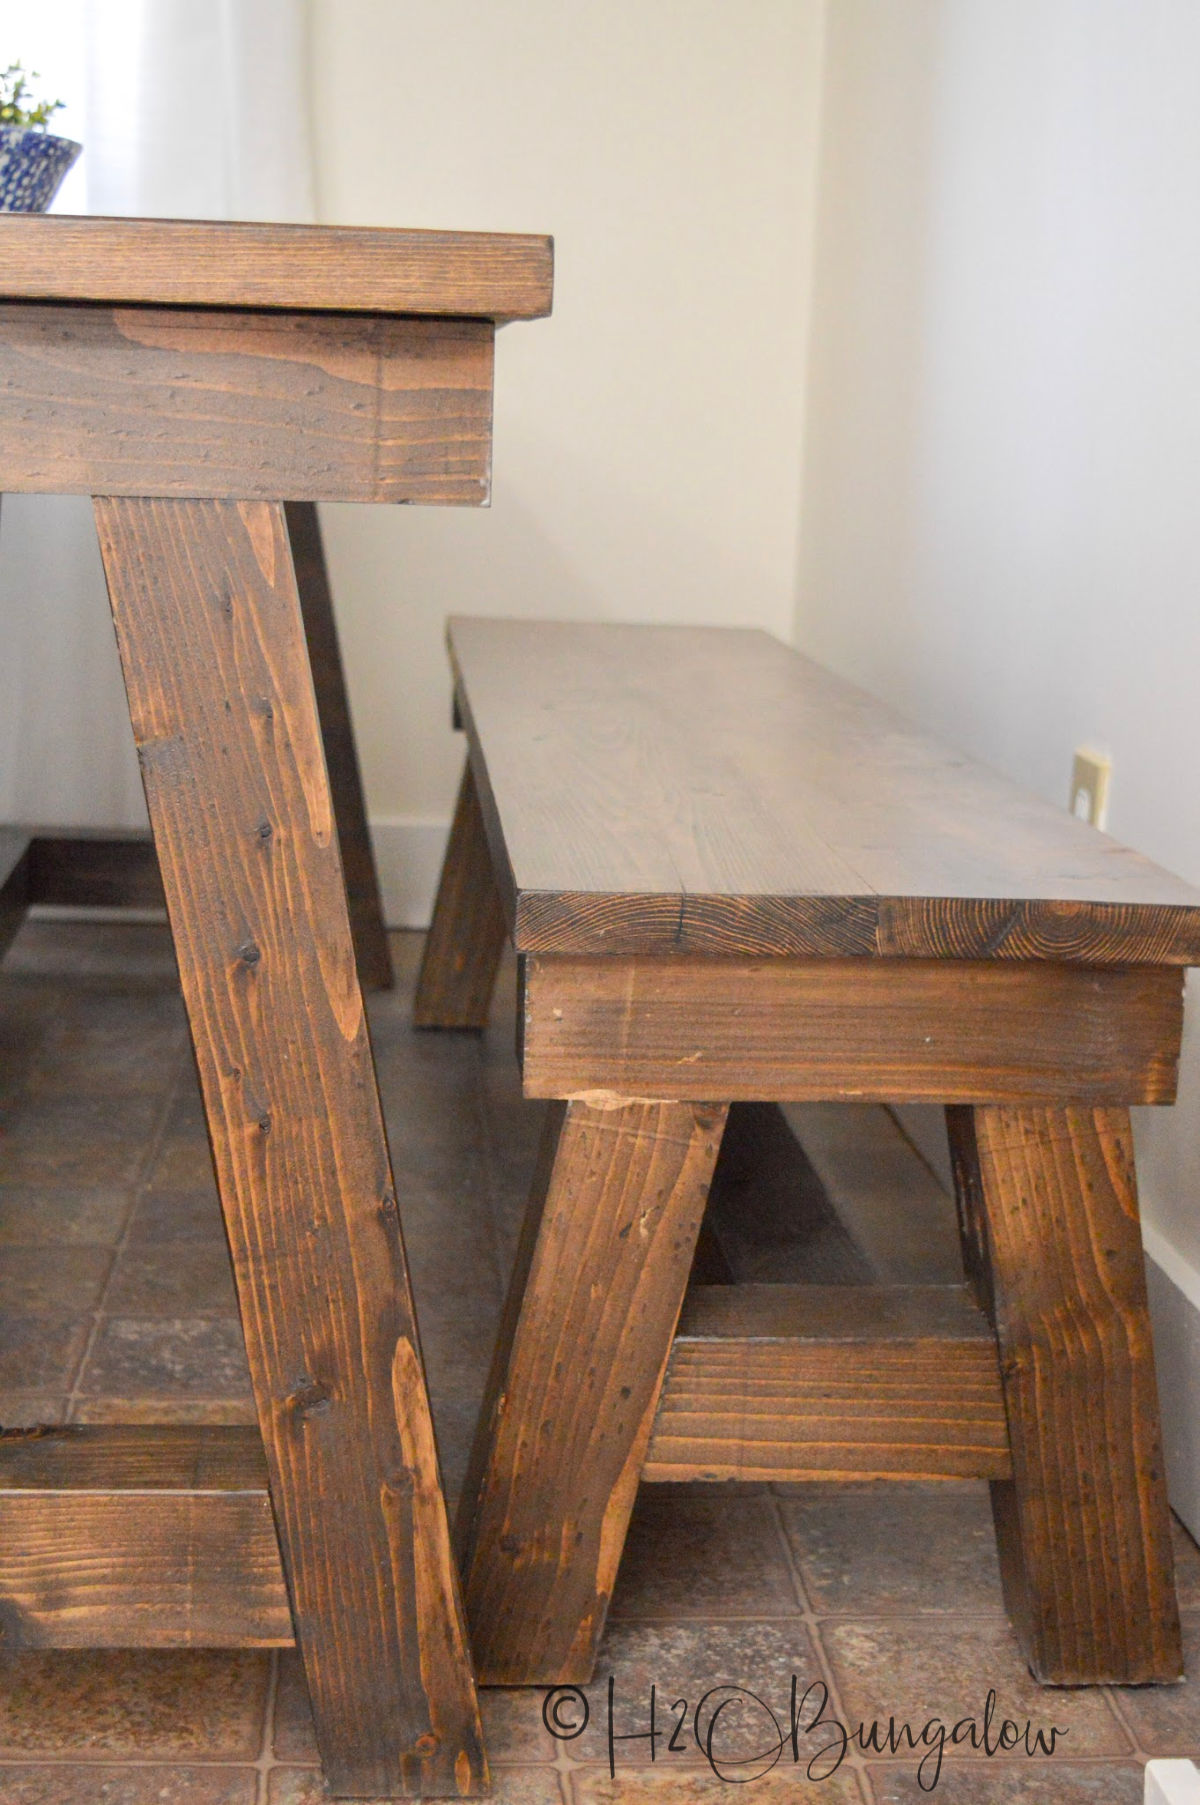 How To Build A Diy Farmhouse Table H2obungalow